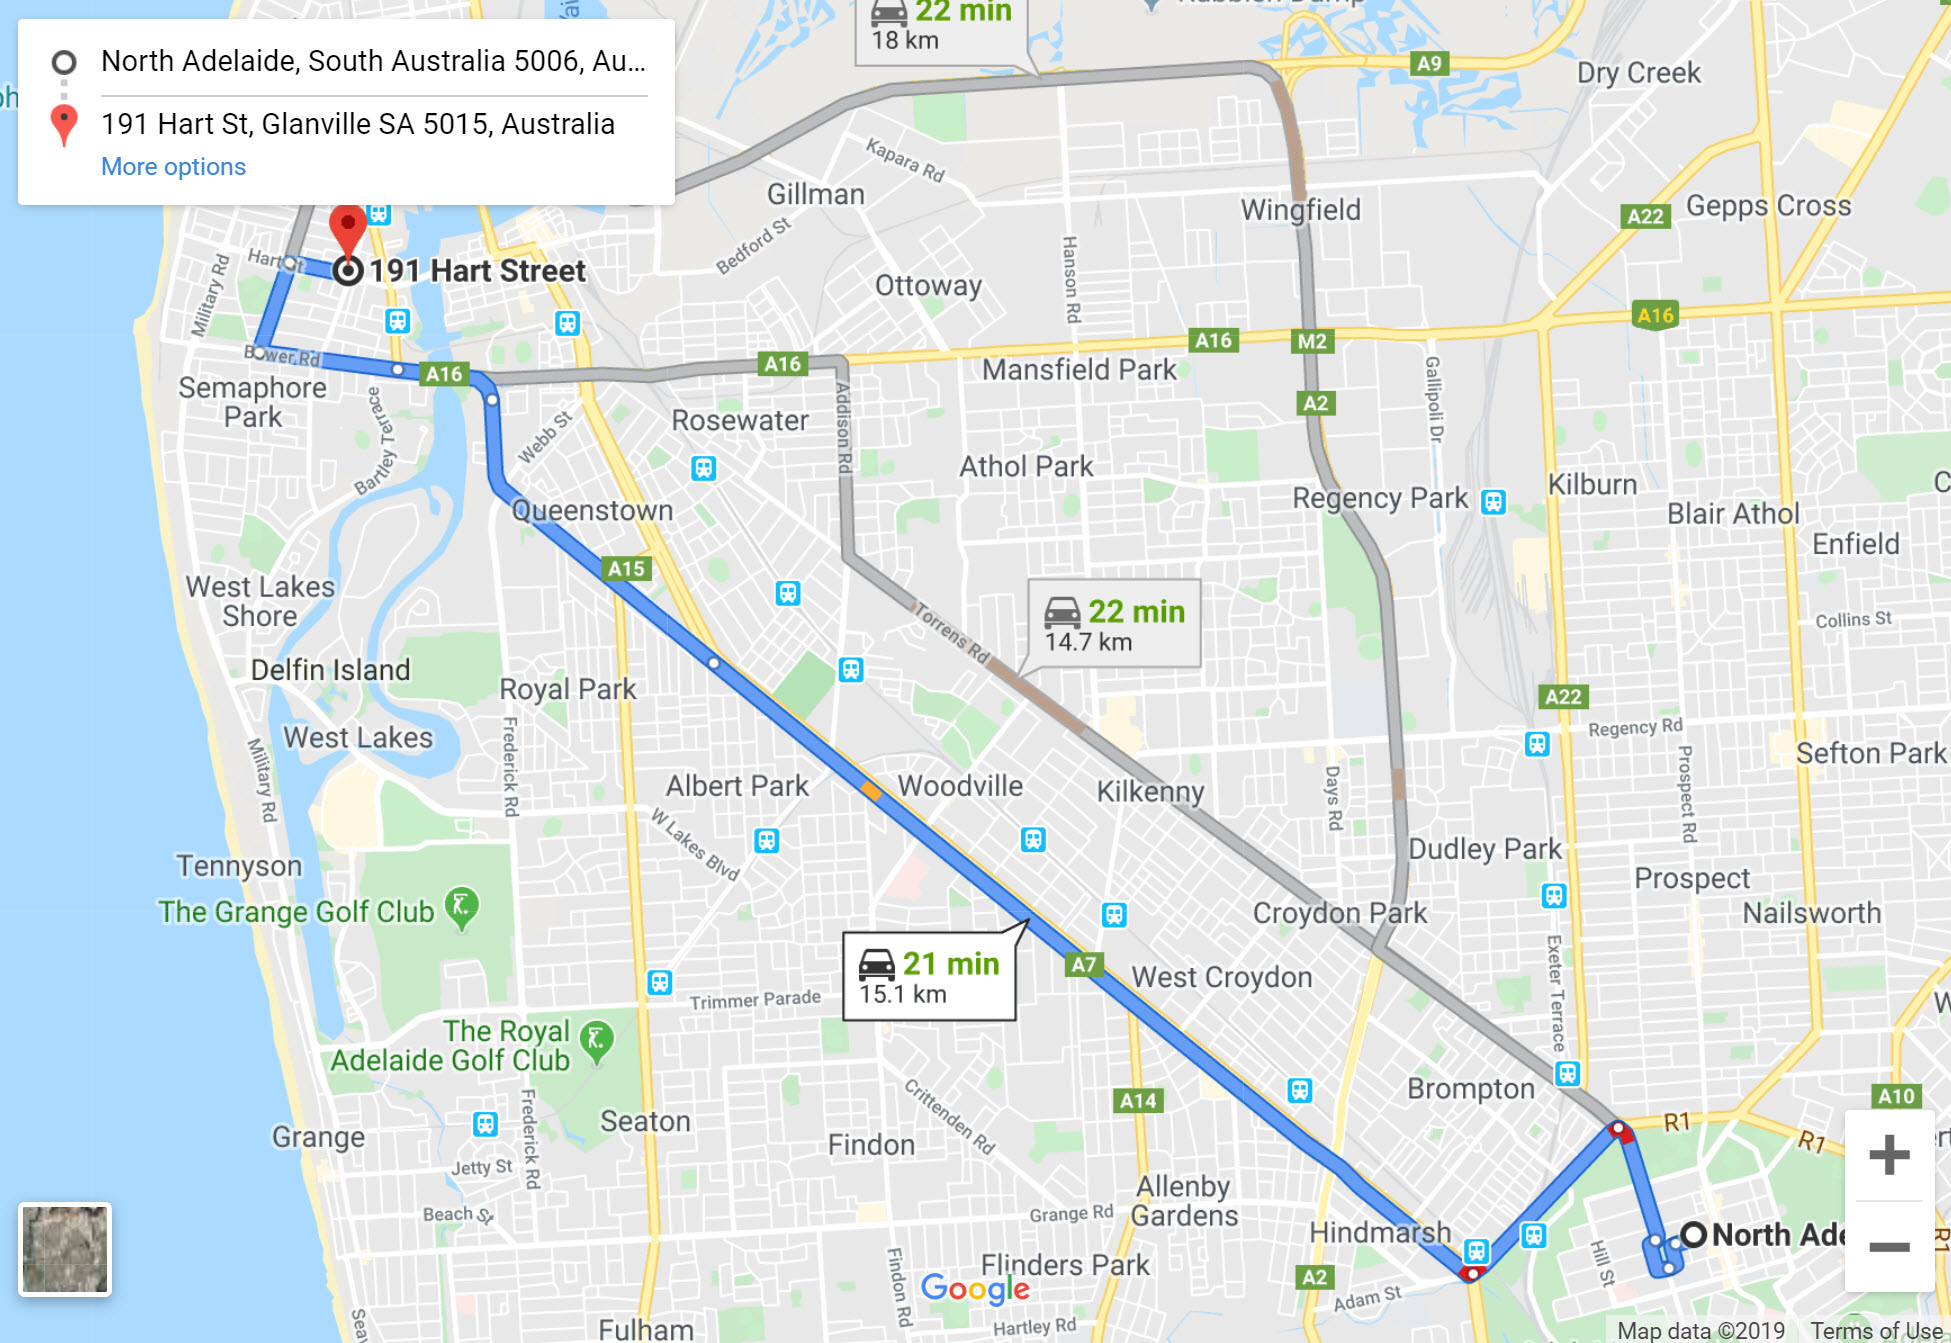 directions from north adelaide